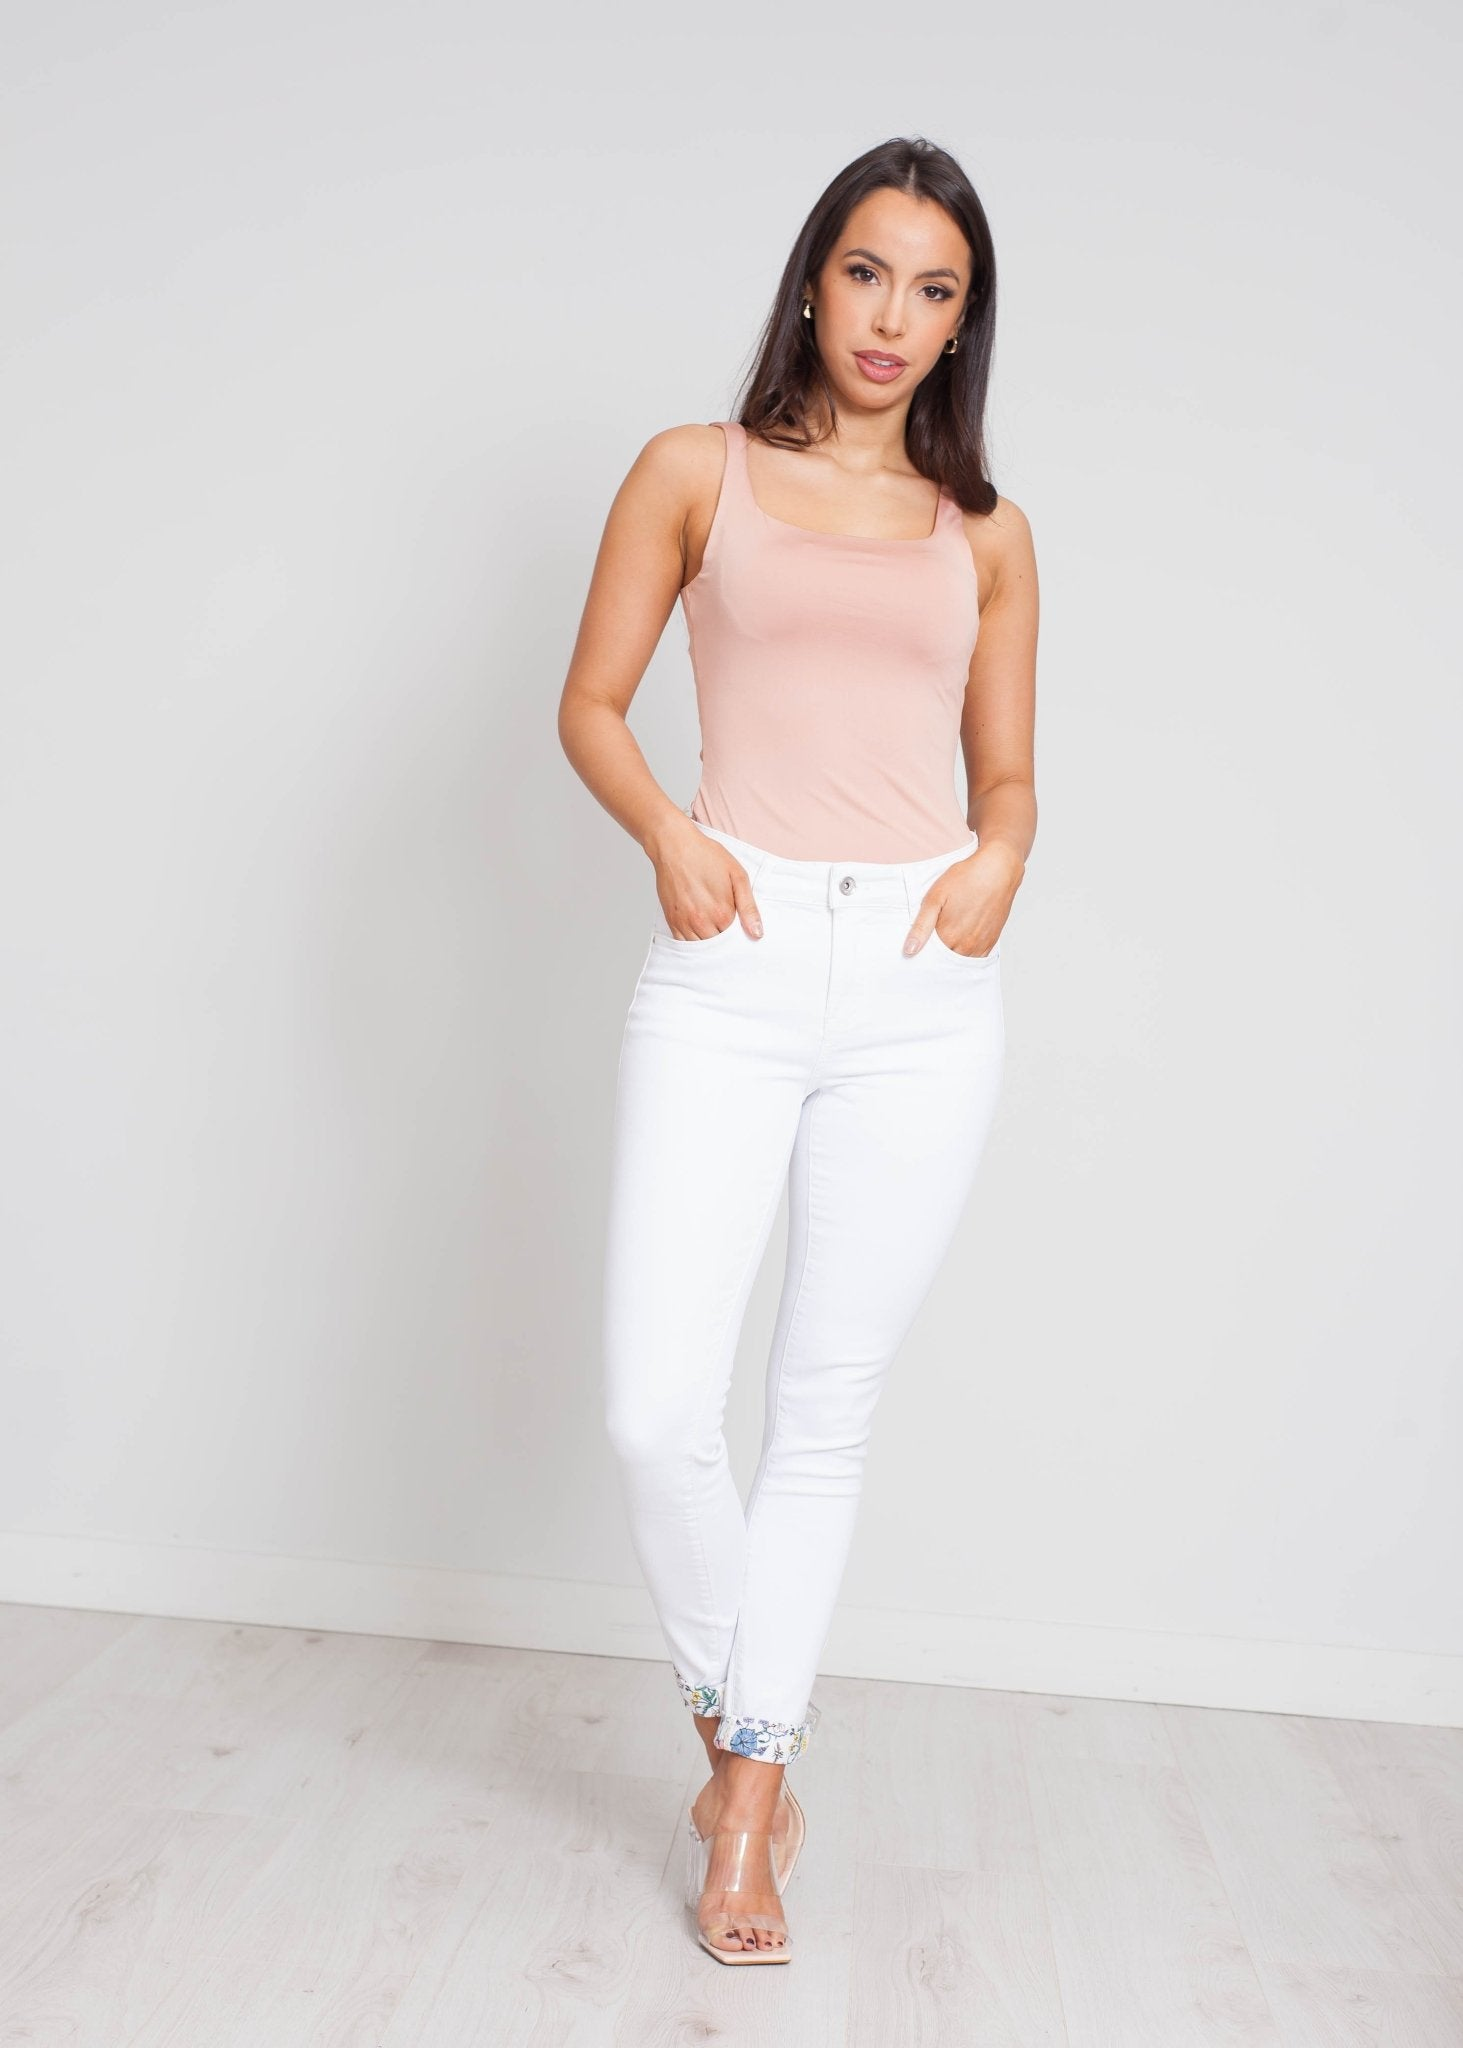 Riley Floral Turn Up Jean In White - The Walk in Wardrobe